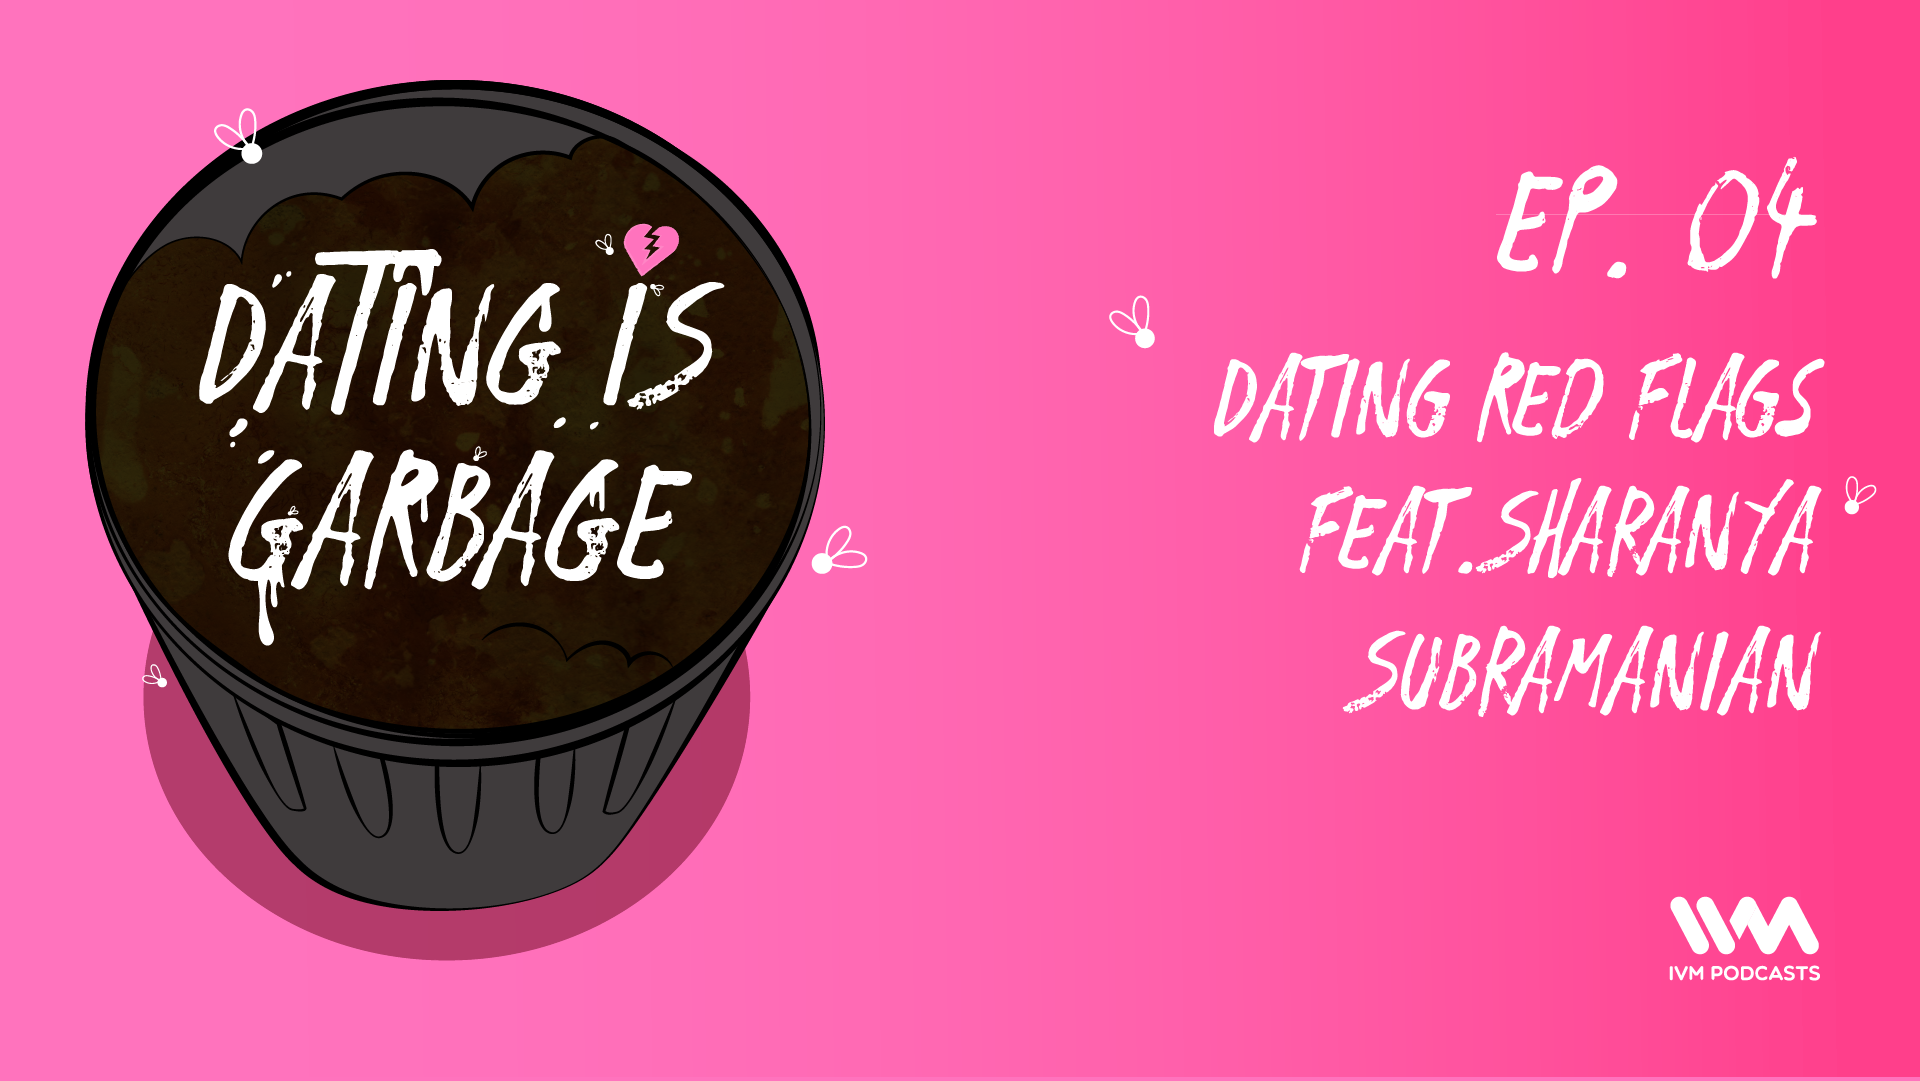 DatingIsGarbageEpisode04.png